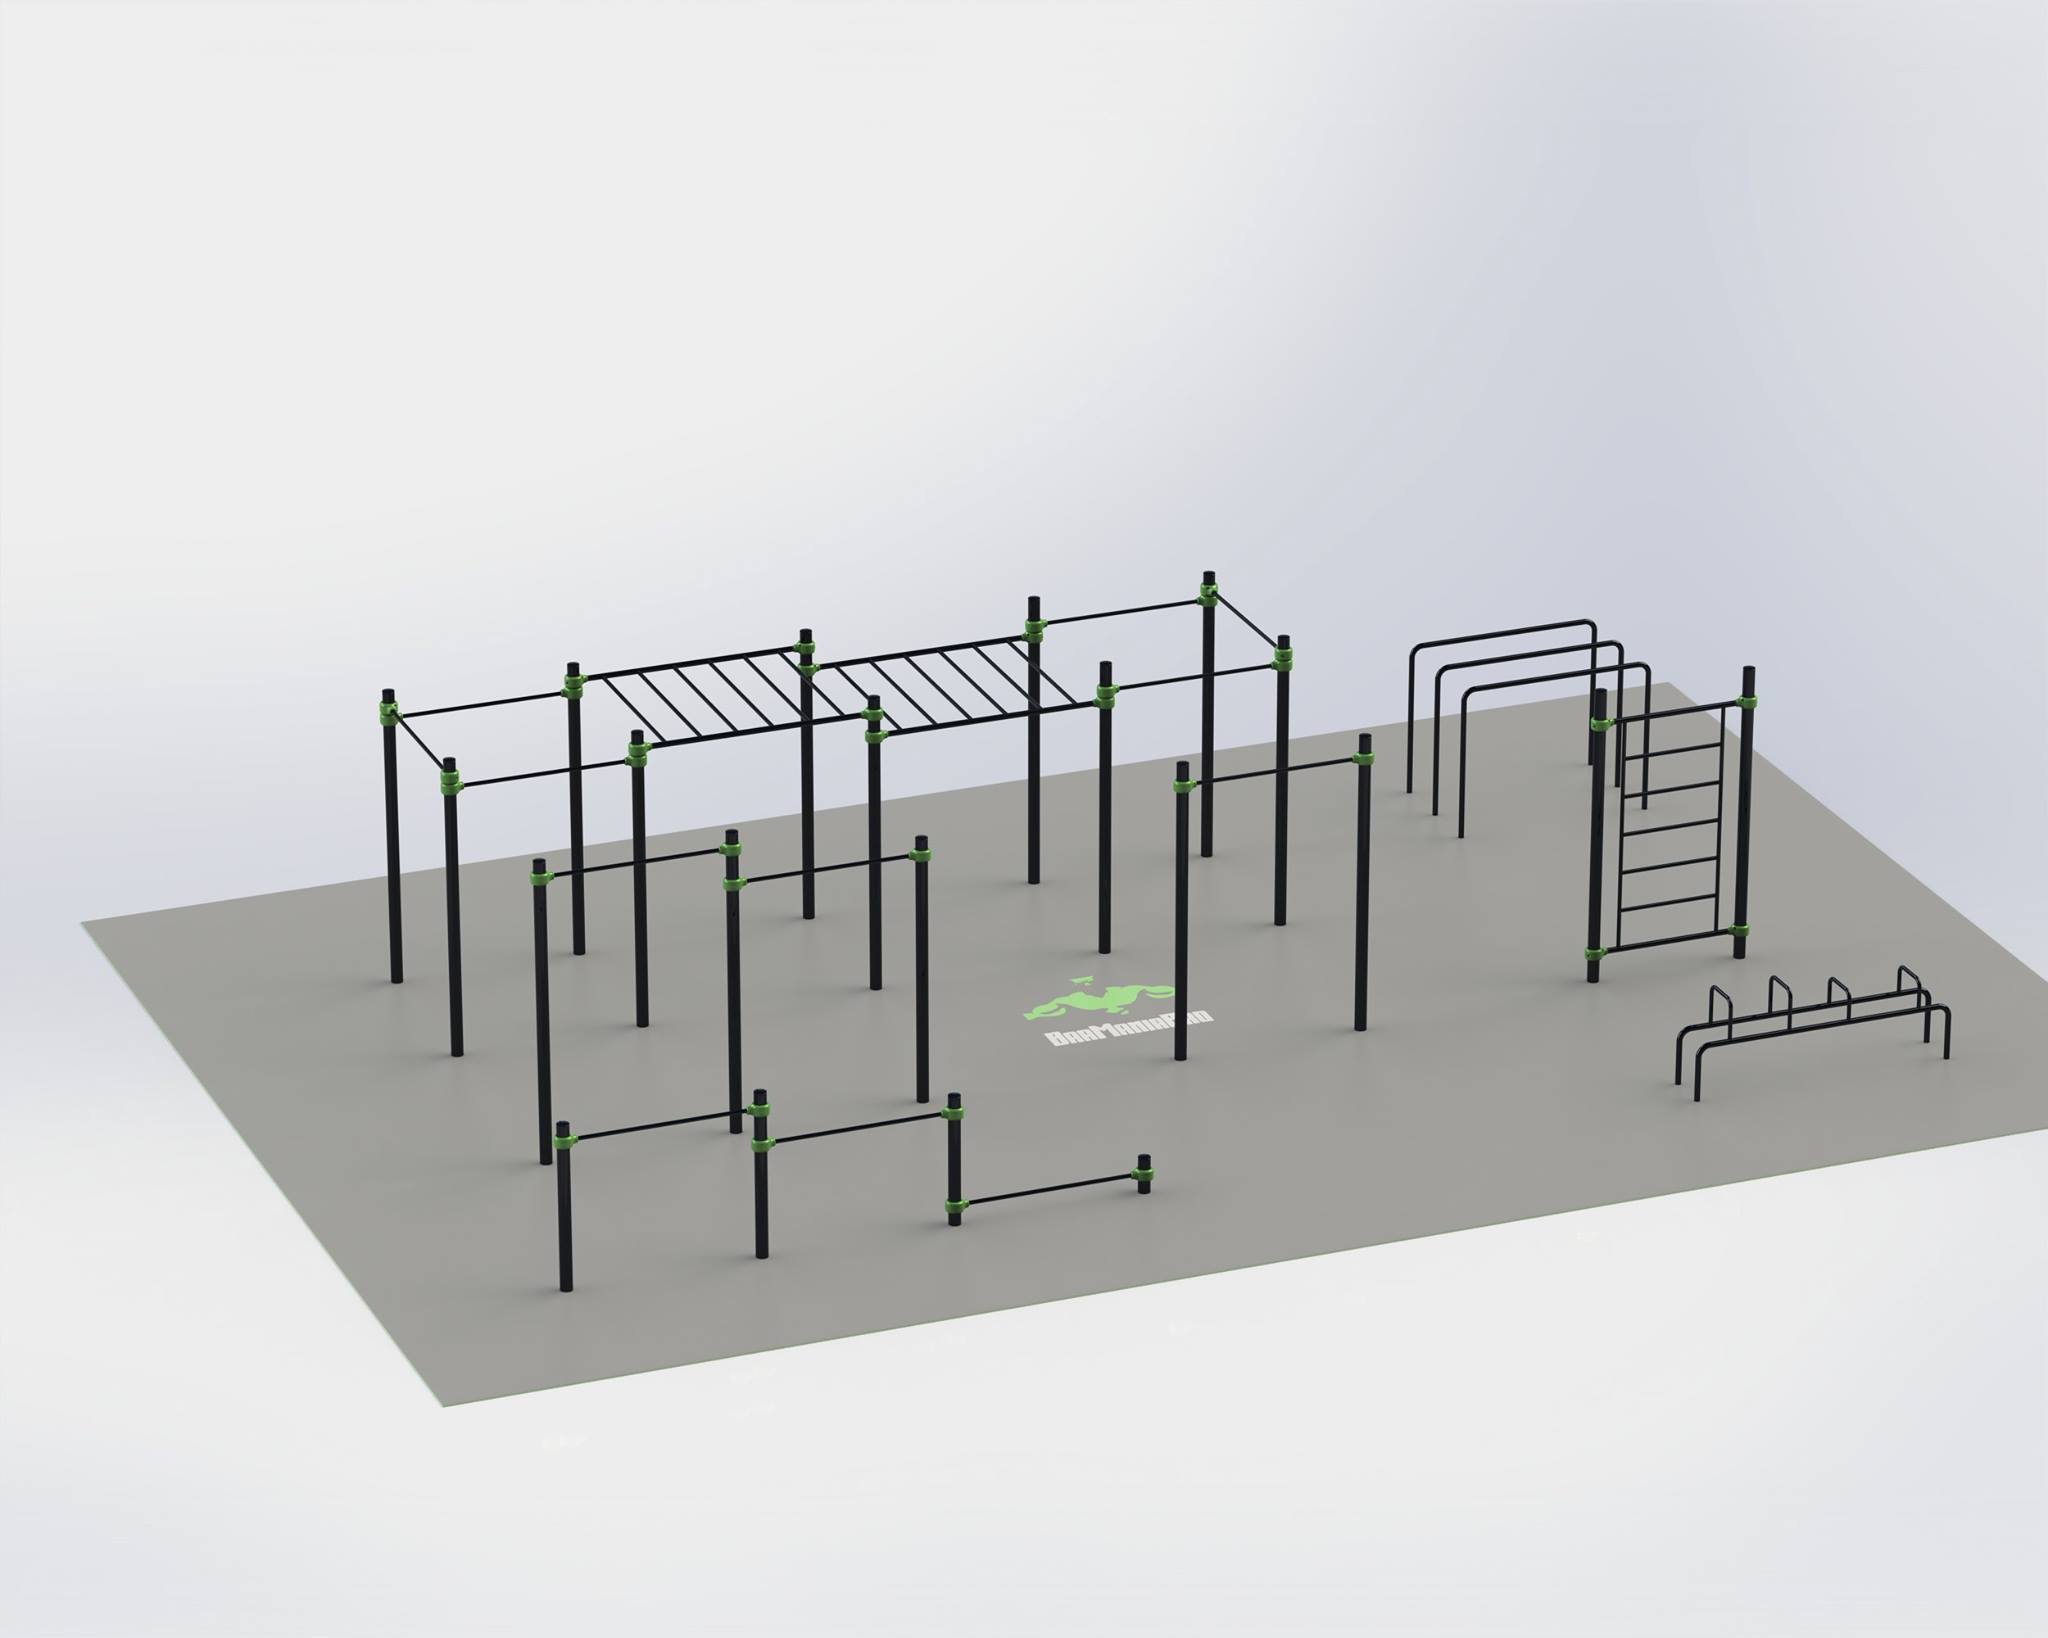 inauguration du parc de street workout barmaniapro sainte genevieve des bois protec sport. Black Bedroom Furniture Sets. Home Design Ideas